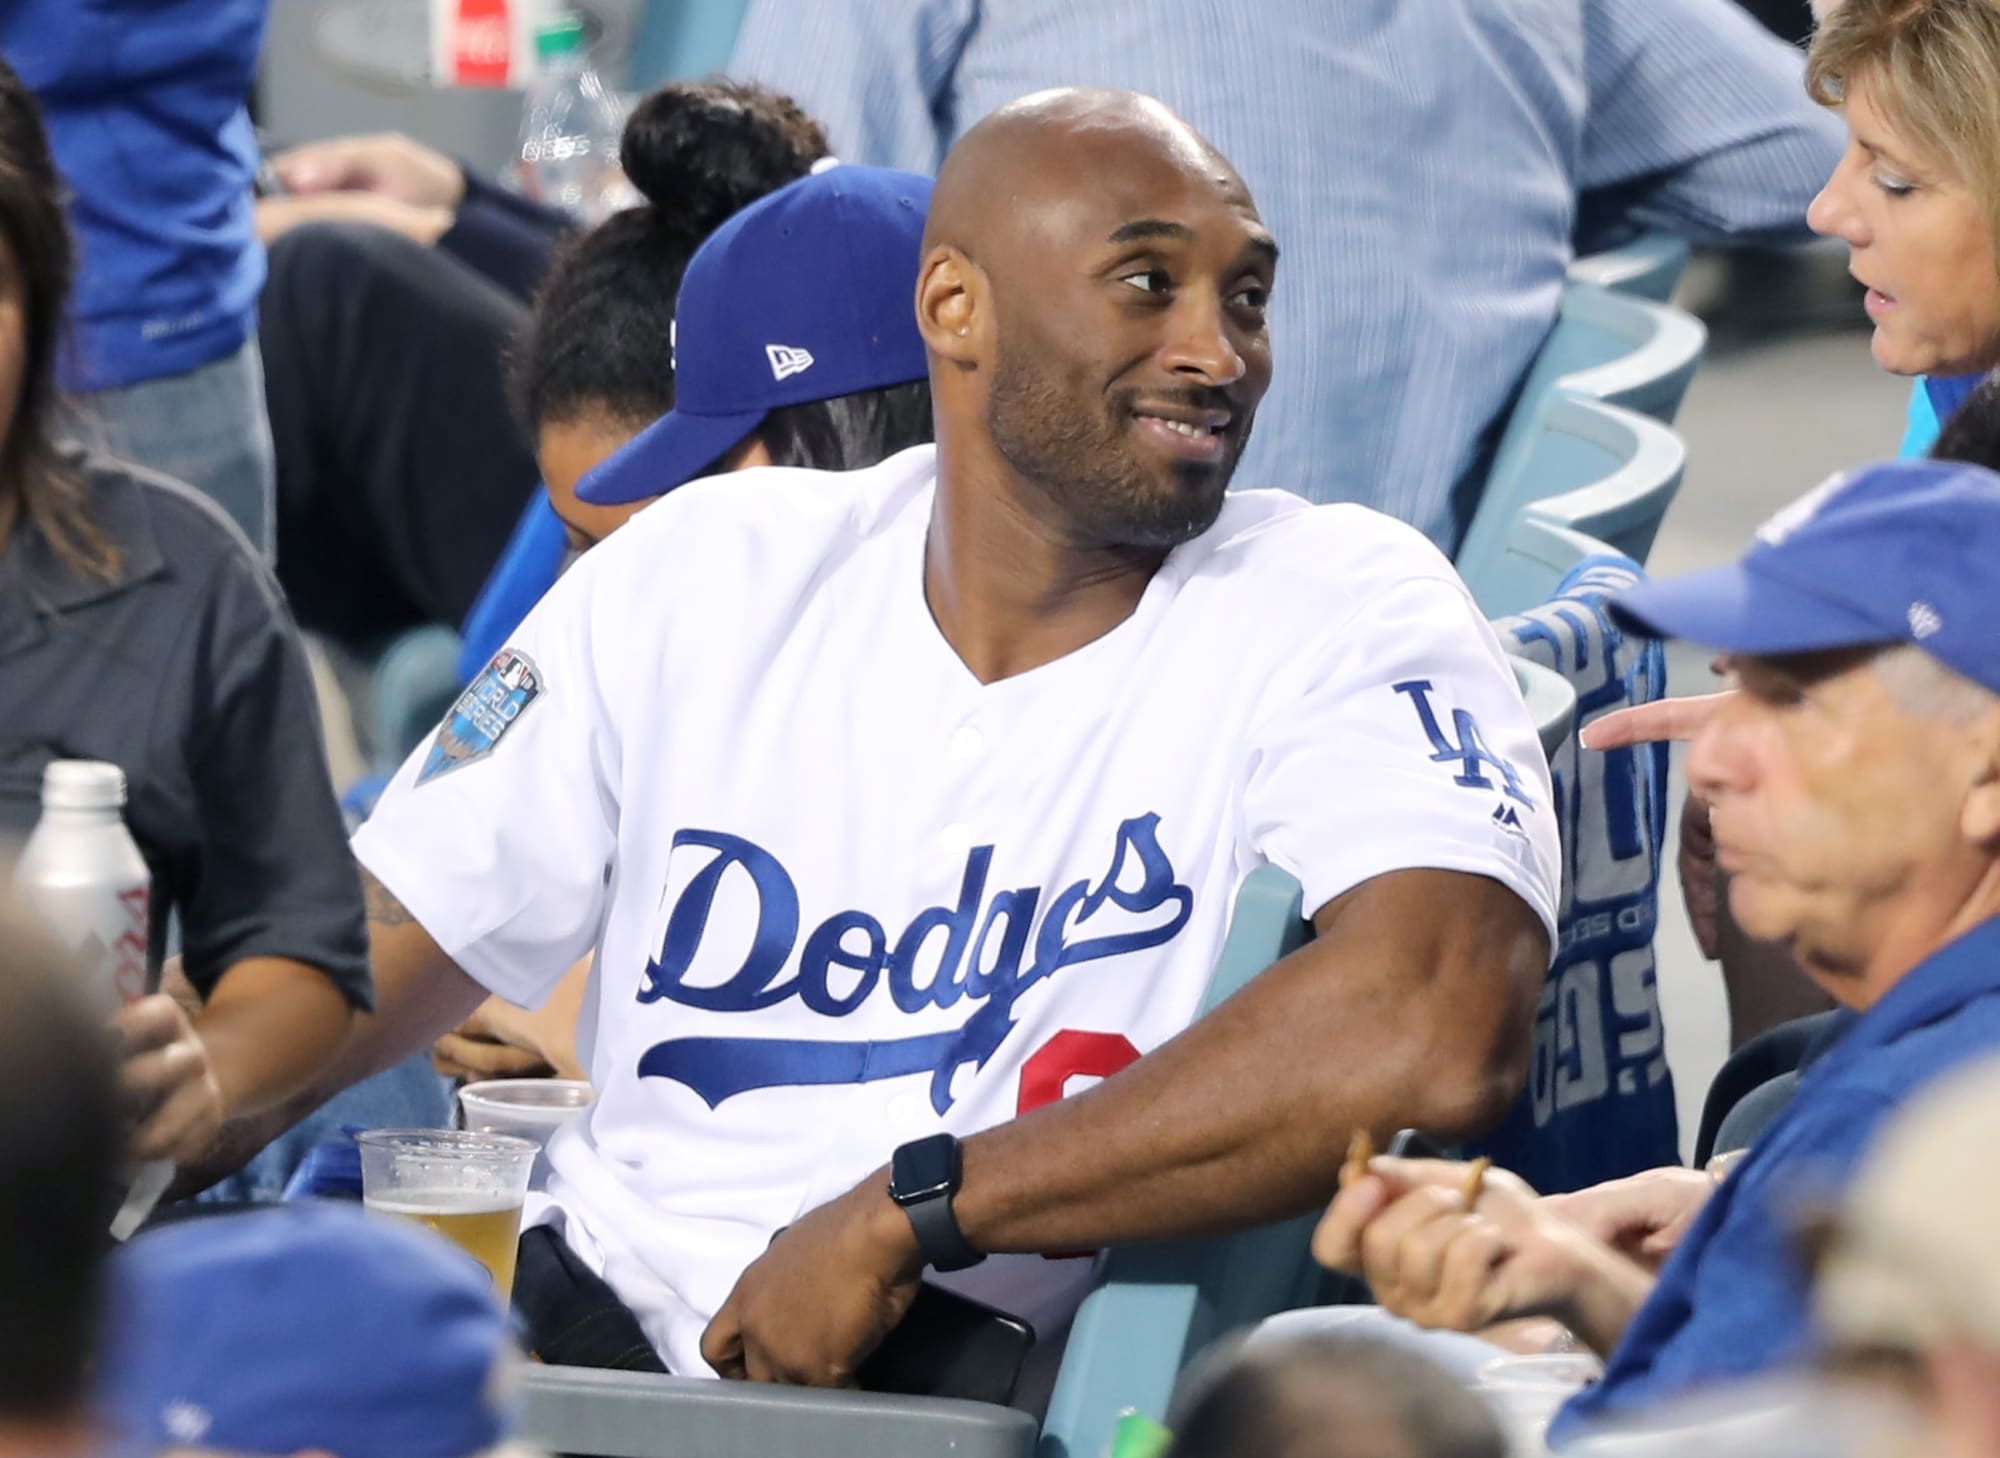 Dodgers: This Kobe fact about Game 7 home runs will give you chills